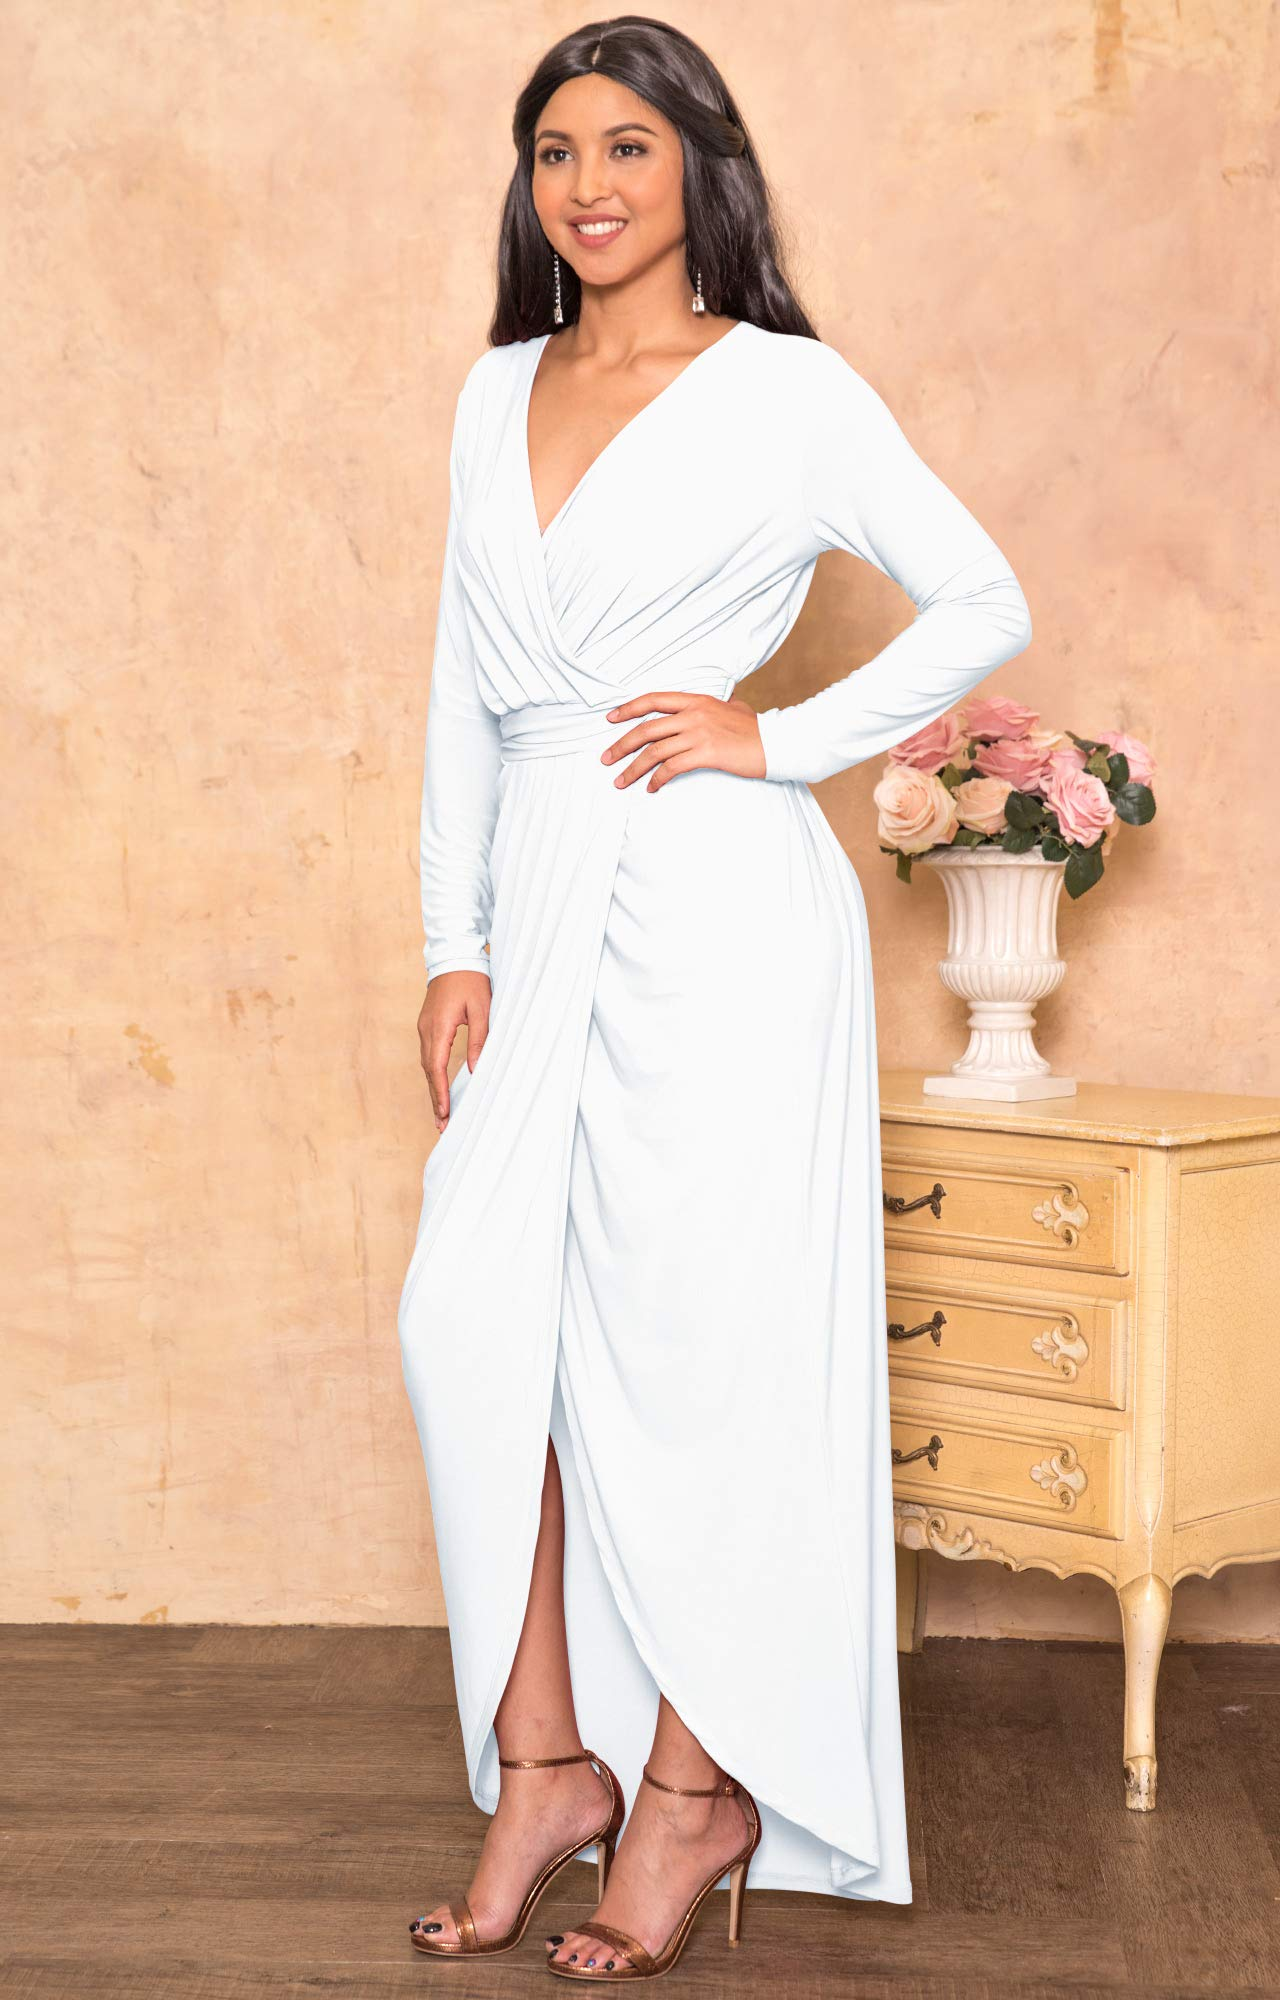 42a8c6d2bbd KOH KOH Plus Size Womens Long Sleeve Full Length V-Neck Sexy Wrap Empire  Waist Formal Winter Fall Cocktail Wedding Evening Gown Gowns Maxi Dress ...